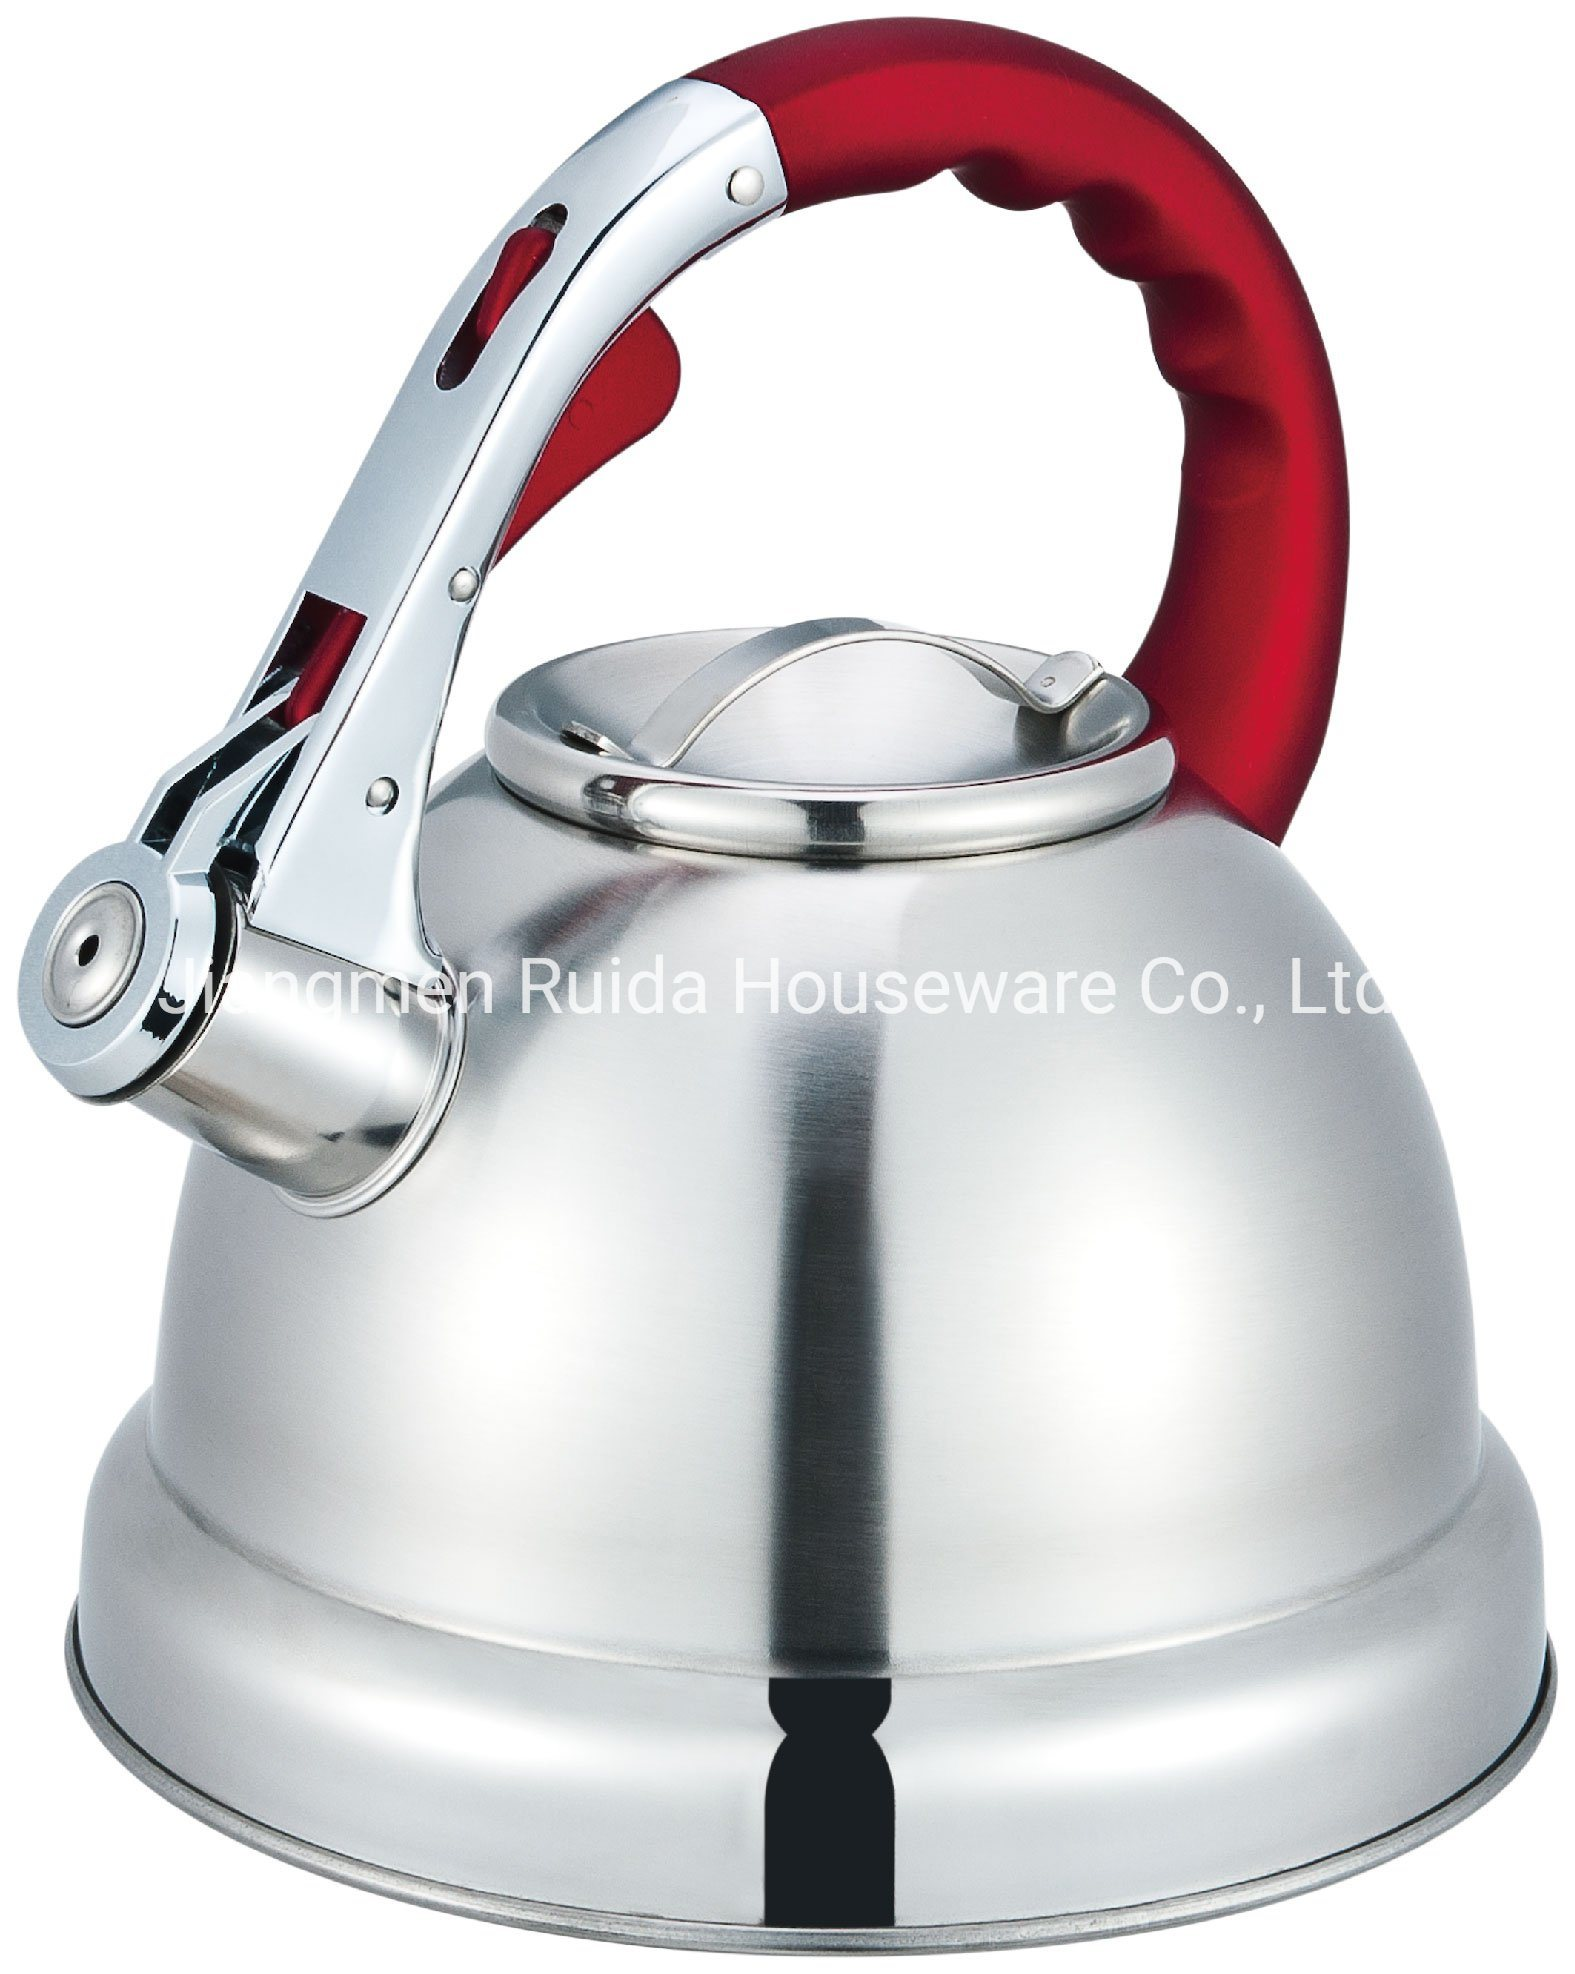 China Kitchen Appliance 3 0l Stainless Steel Whistling Teapot In Color Painting Handles China Stainless Steel Teapot And Kettle Price